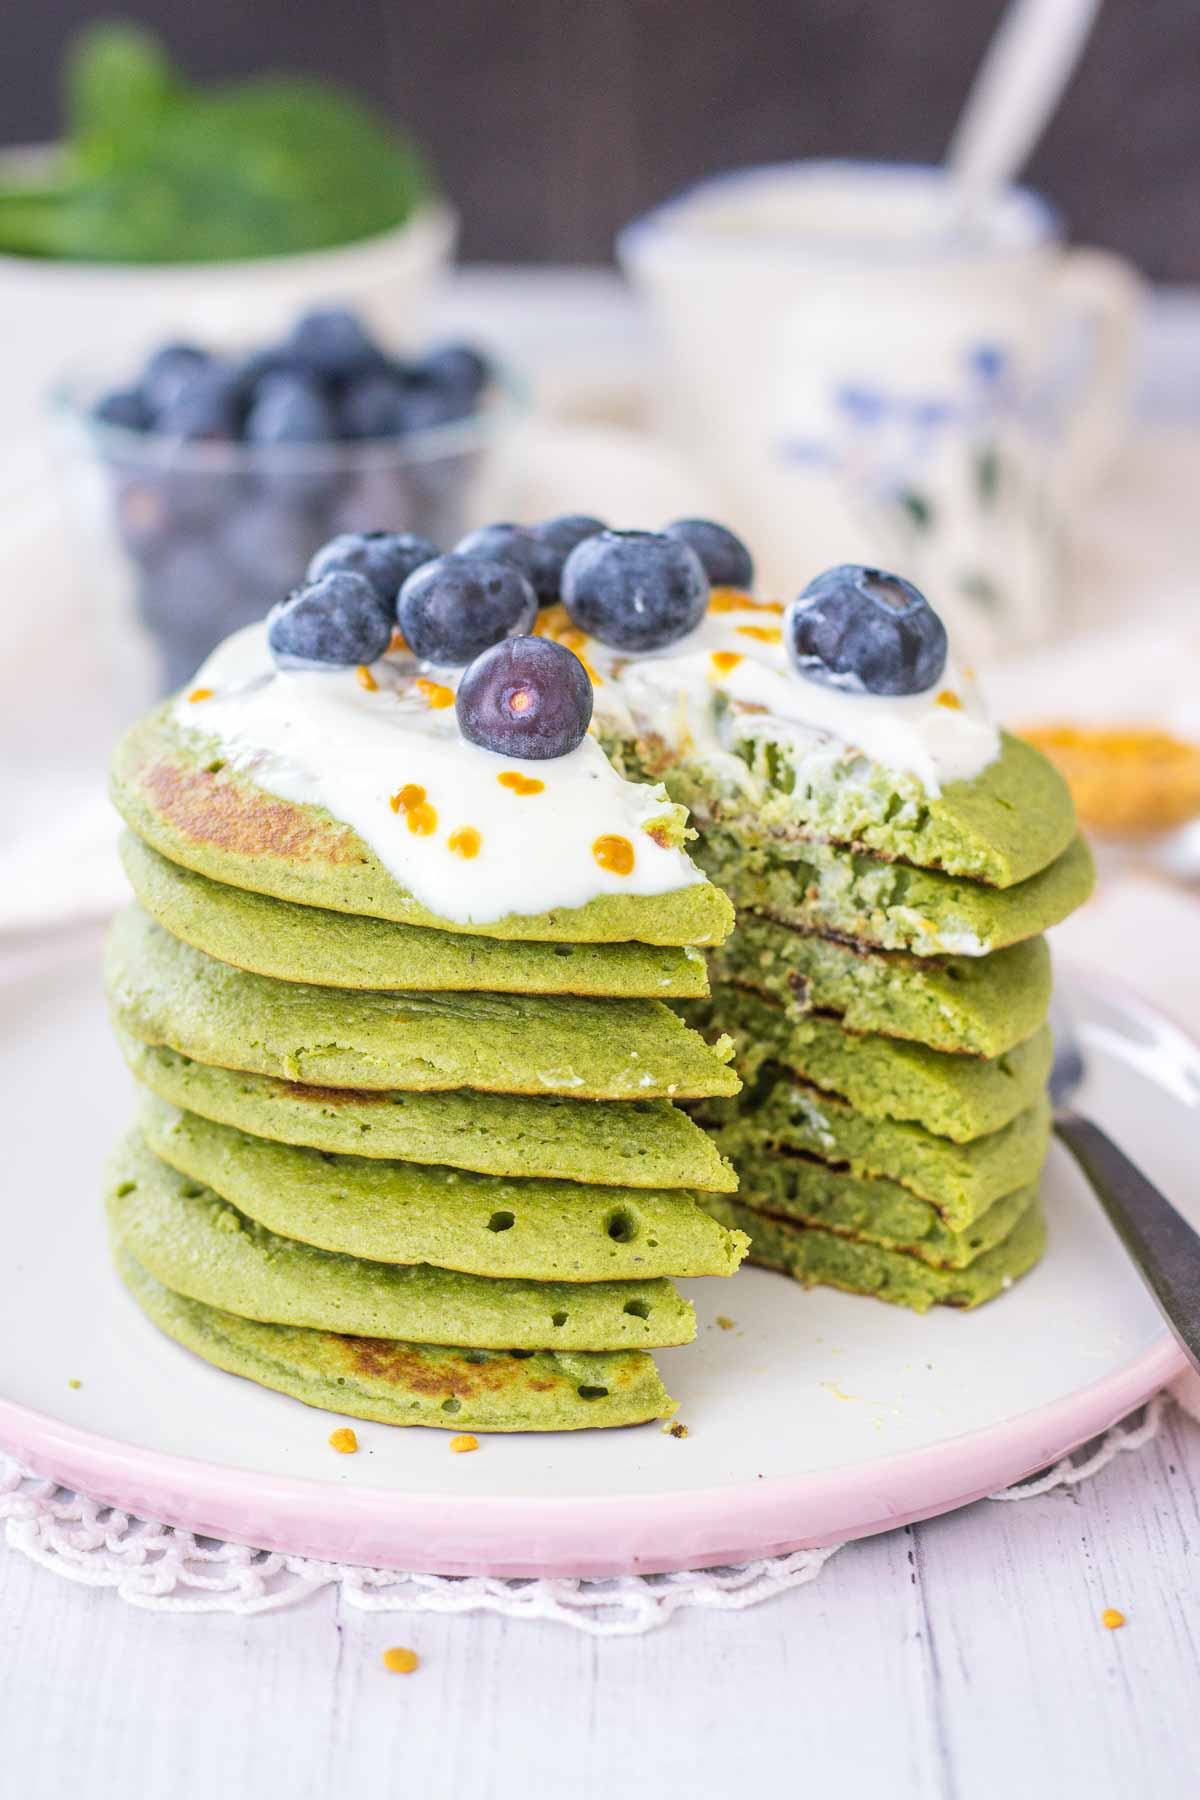 Matcha Pancakes topped with yogurt and blueberries.